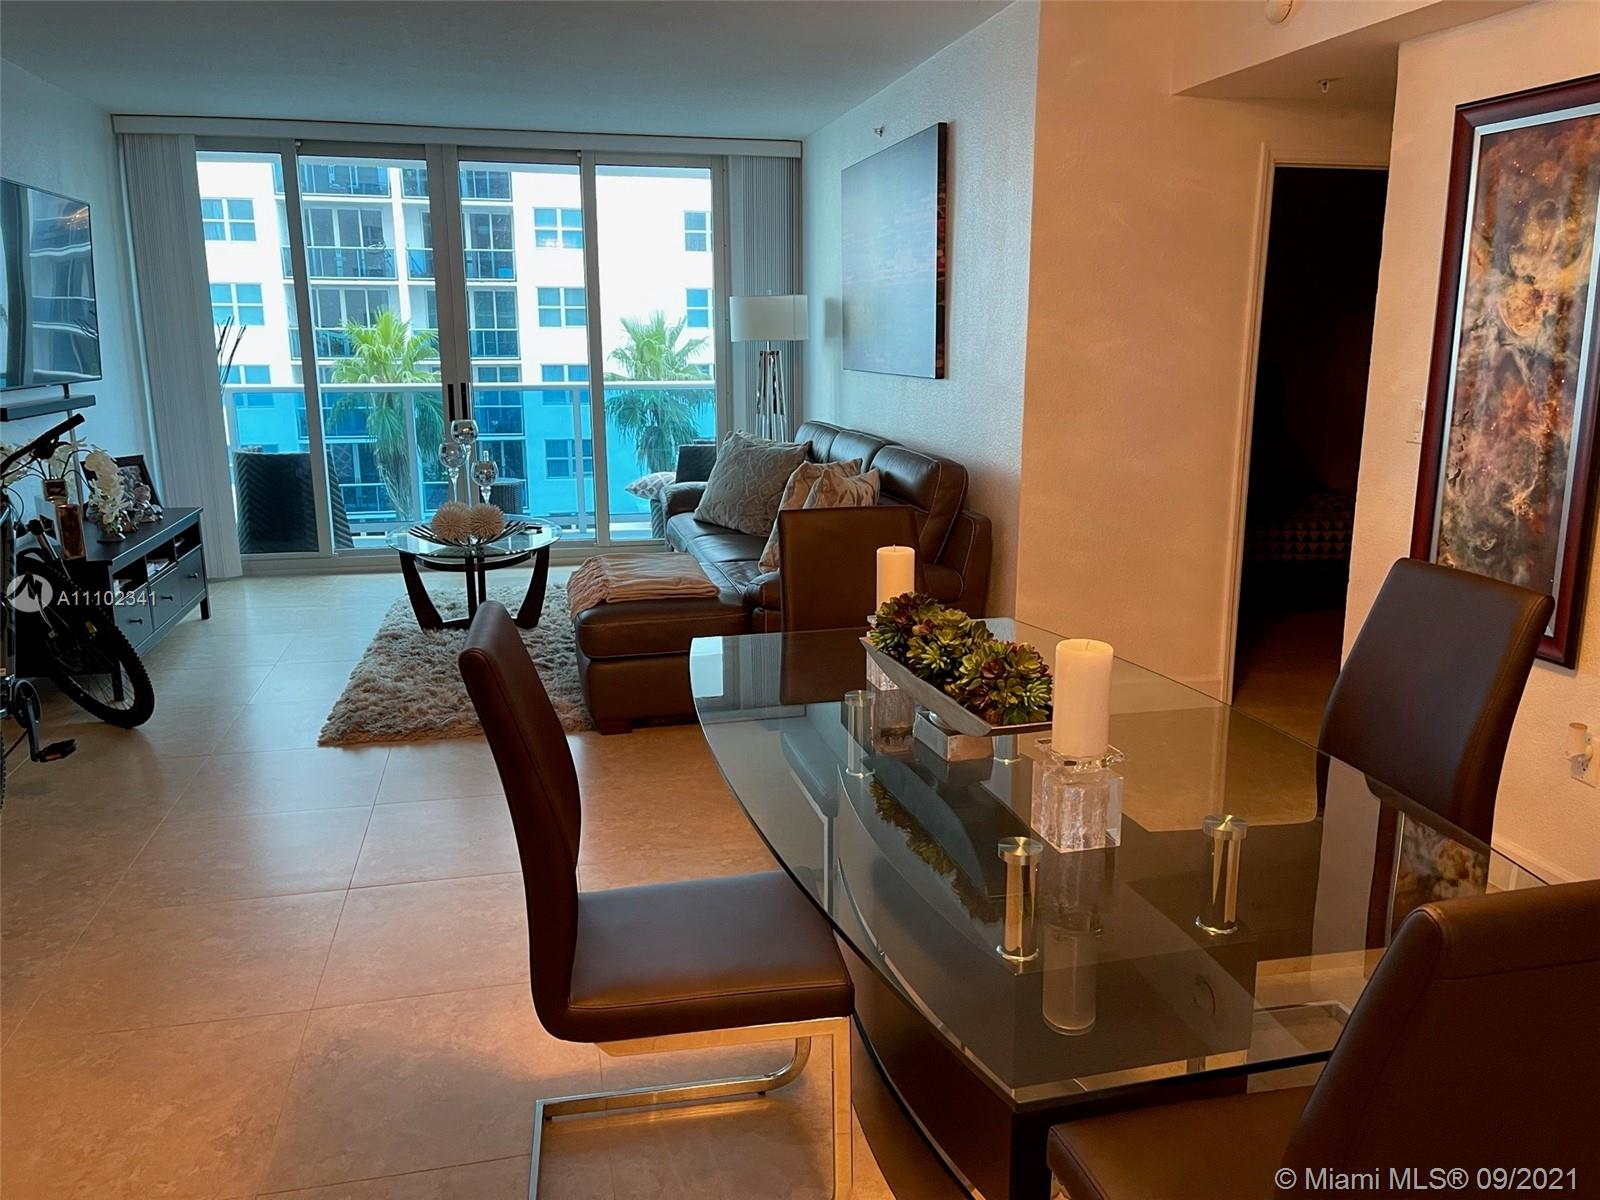 TREASURES ON THE BAY II C Condo,For Rent,TREASURES ON THE BAY II C Brickell,realty,broker,condos near me